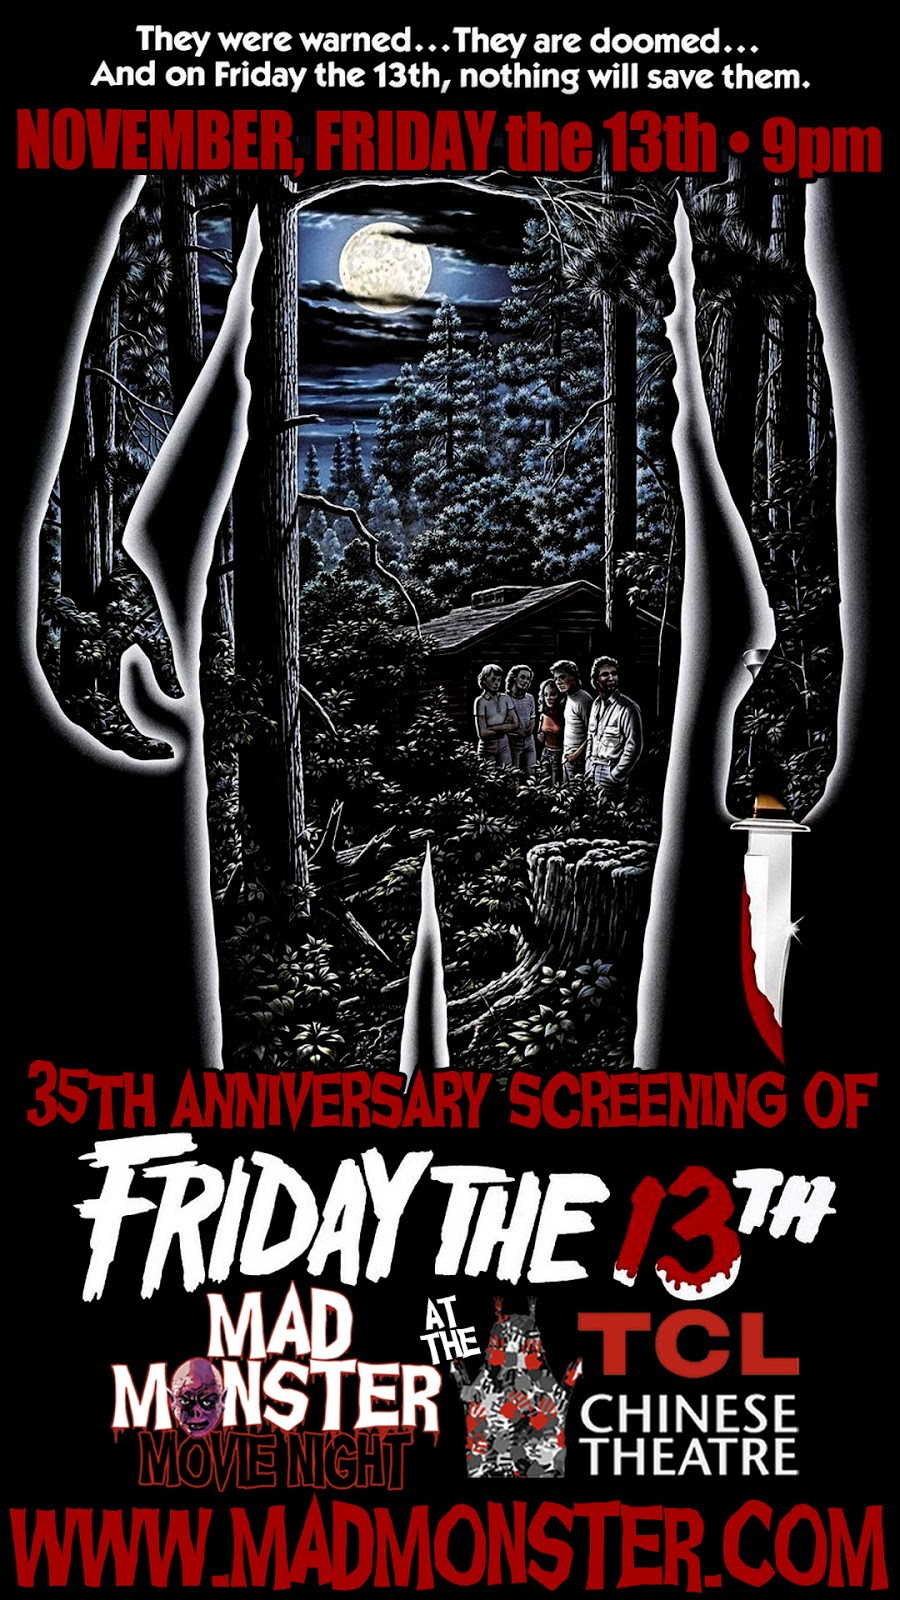 Friday The 13th 1980 Screening At Historic TCL Chinese Theatre